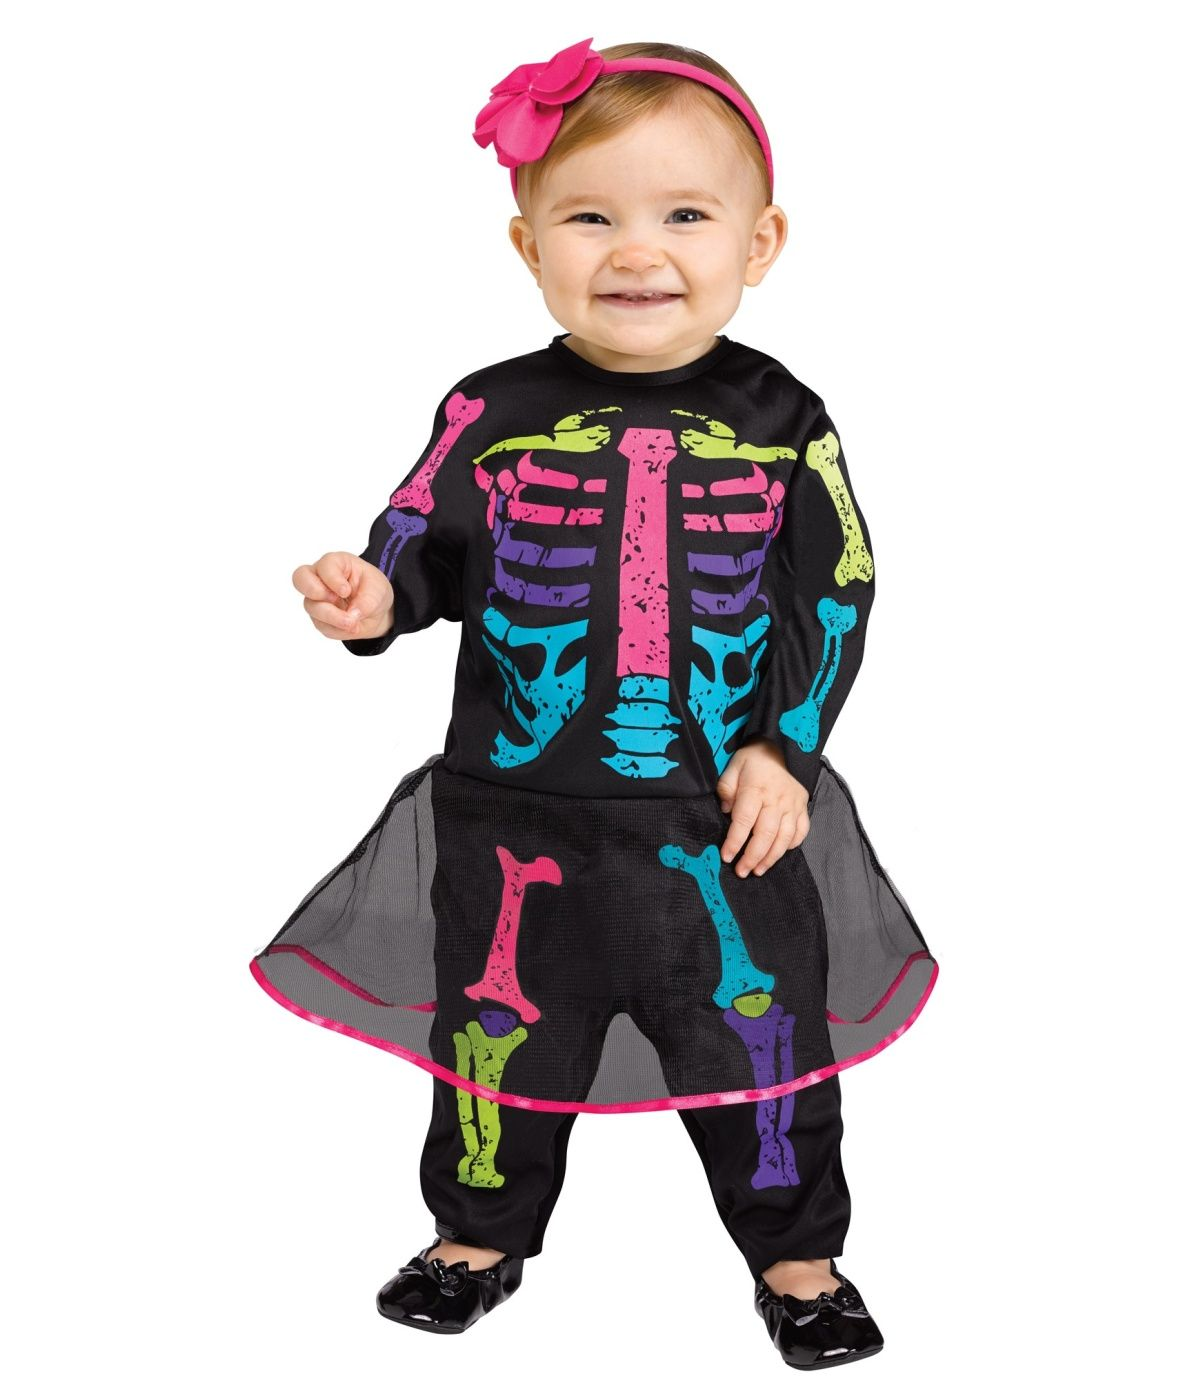 Multicolored Skeleton Baby Girl Costume - Kids Costumes | Kids .  sc 1 st  Pinterest & Multicolored Skeleton Baby Girl Costume - Kids Costumes | Kids ...